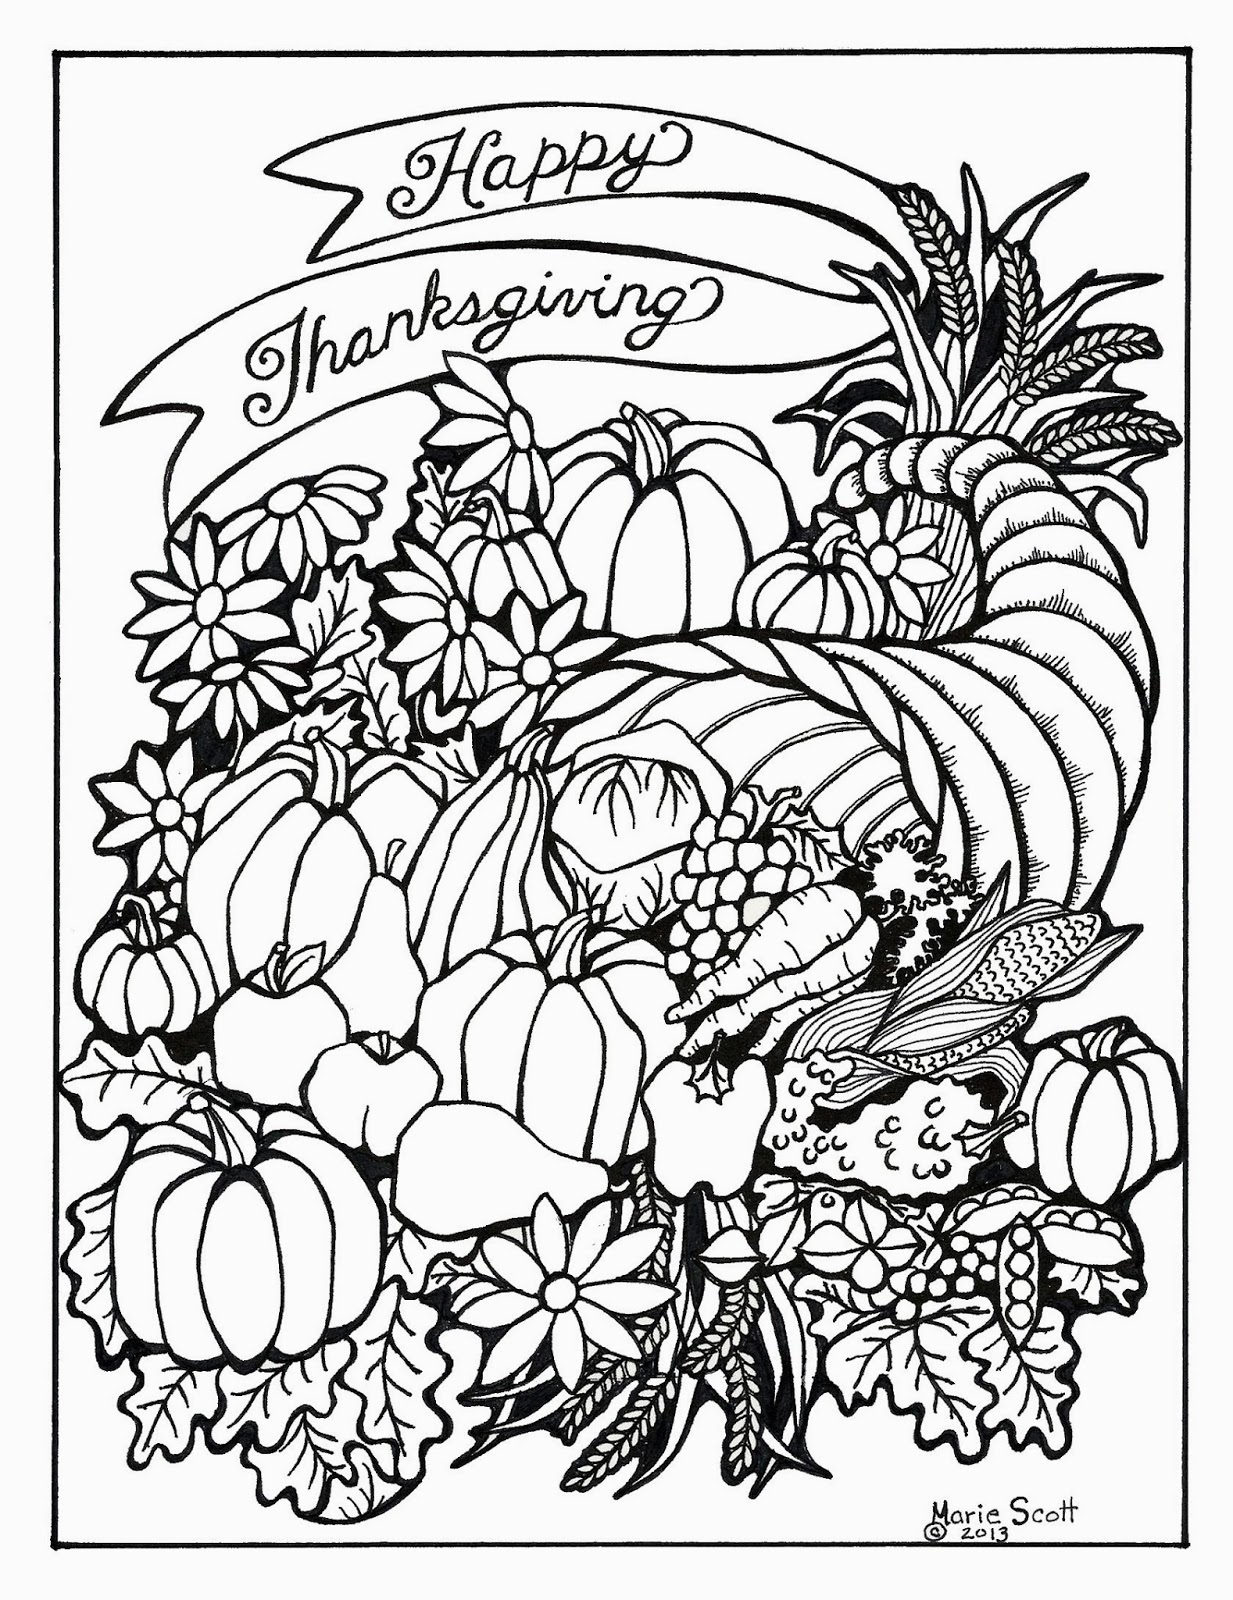 It is an image of Genius adult coloring pages thanksgiving